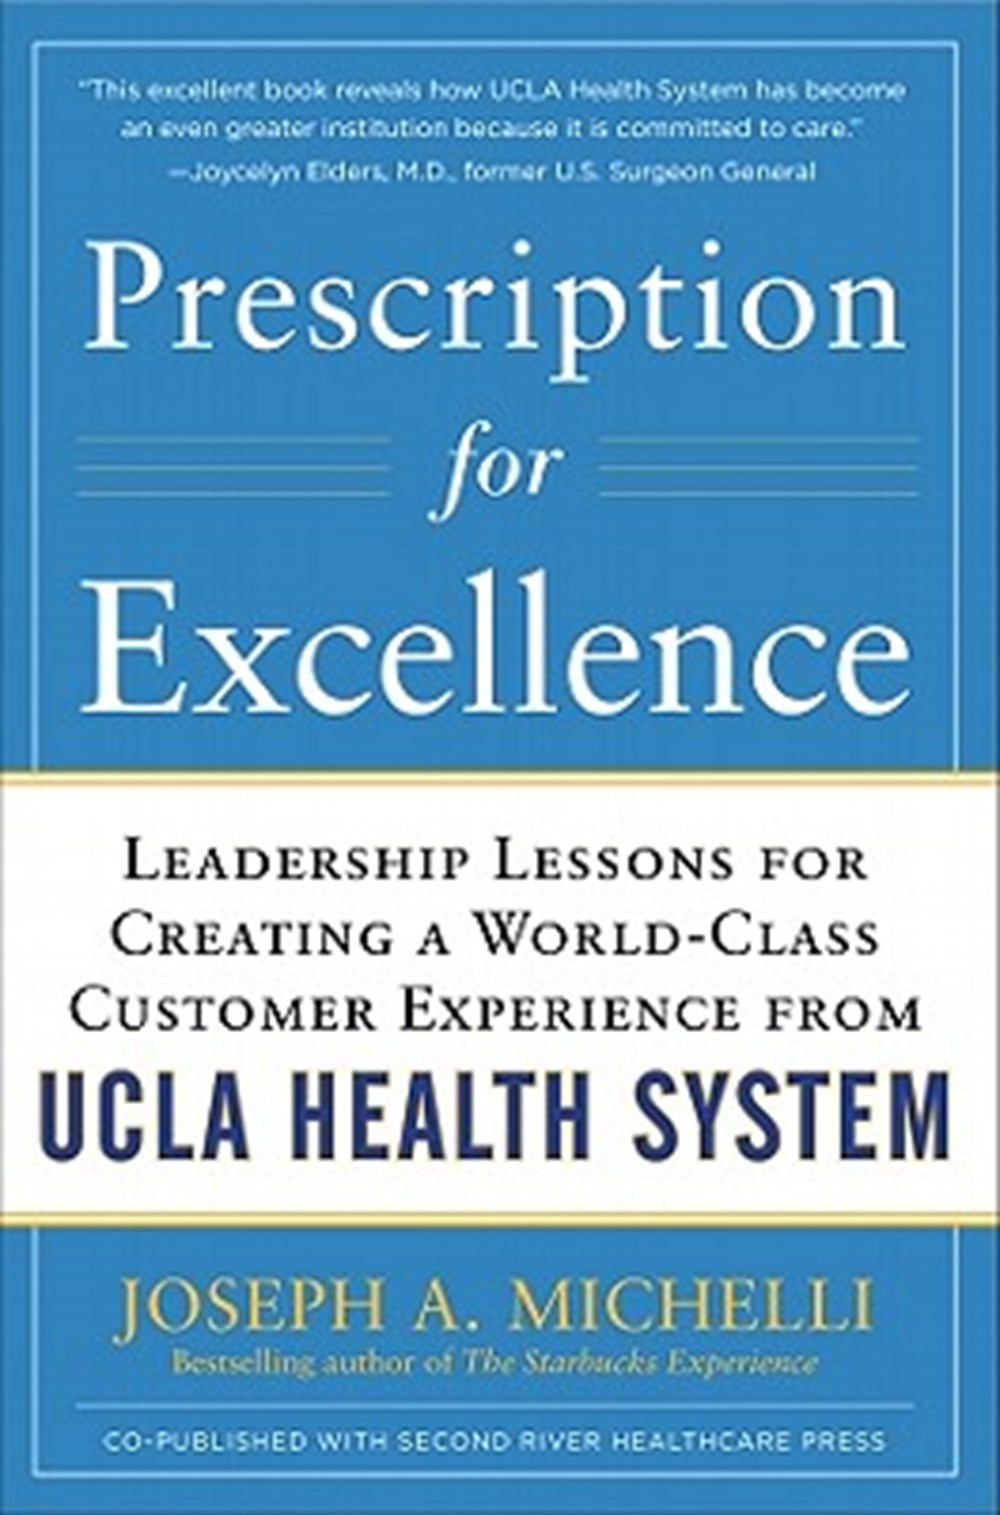 Prescription for Excellence Leadership Lessons for Creating a World-Class Customer Experience from U